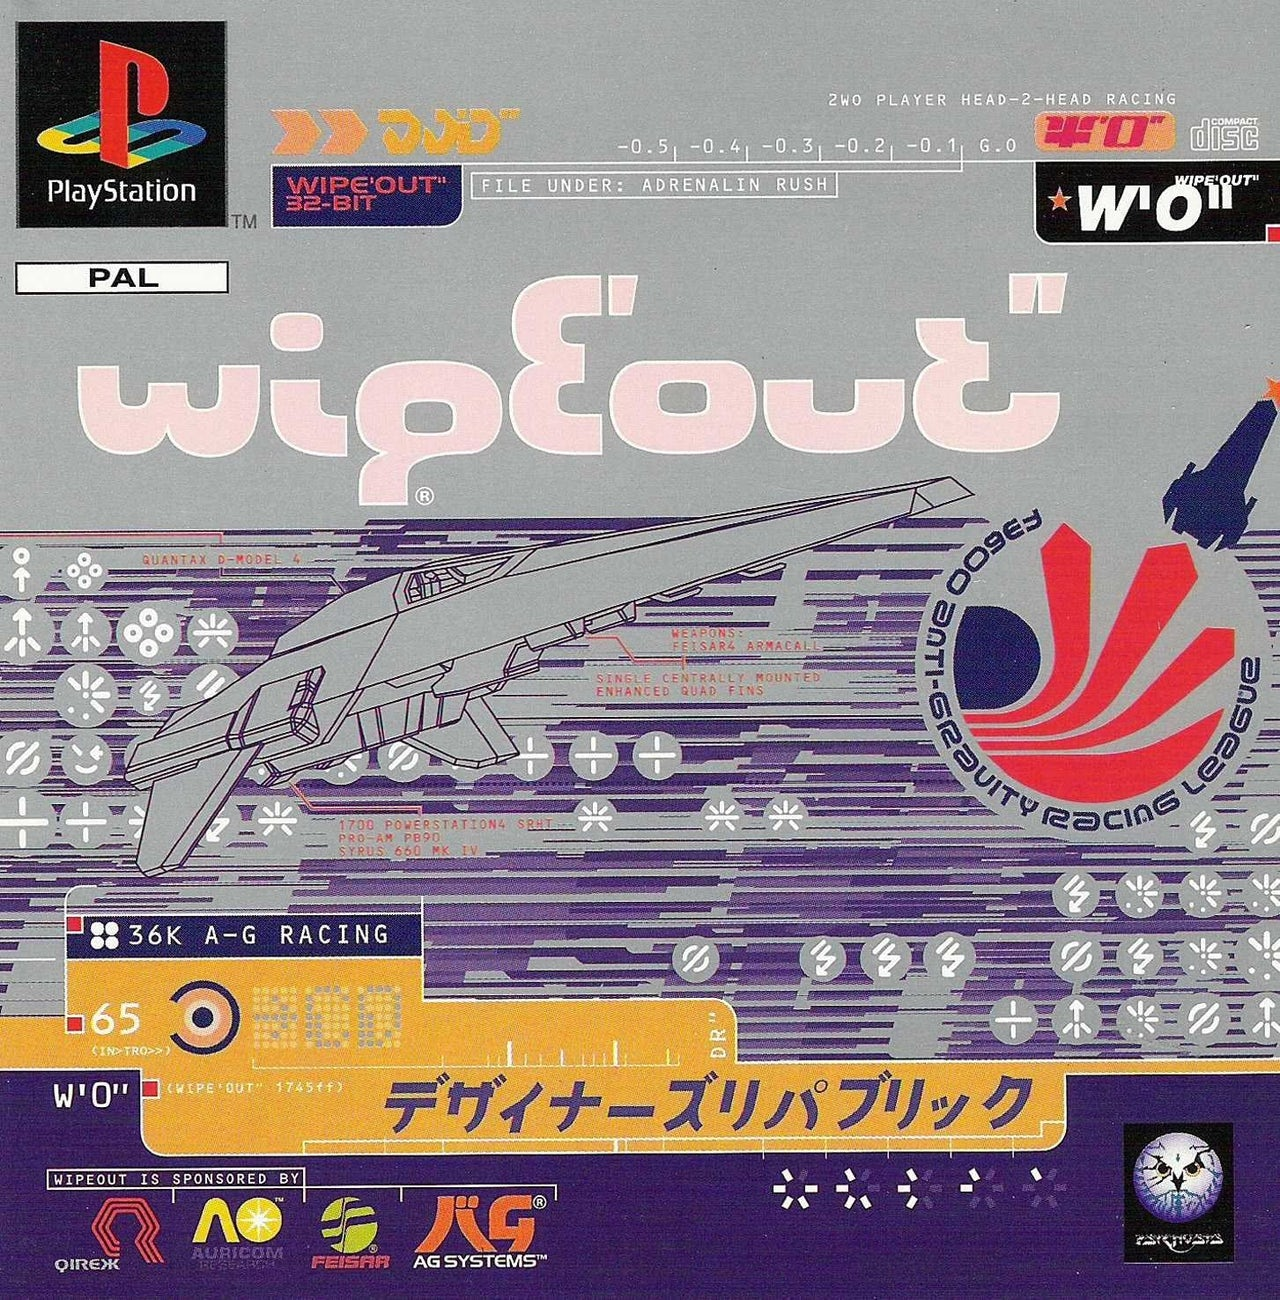 Original Wipeout box art for the PlayStation